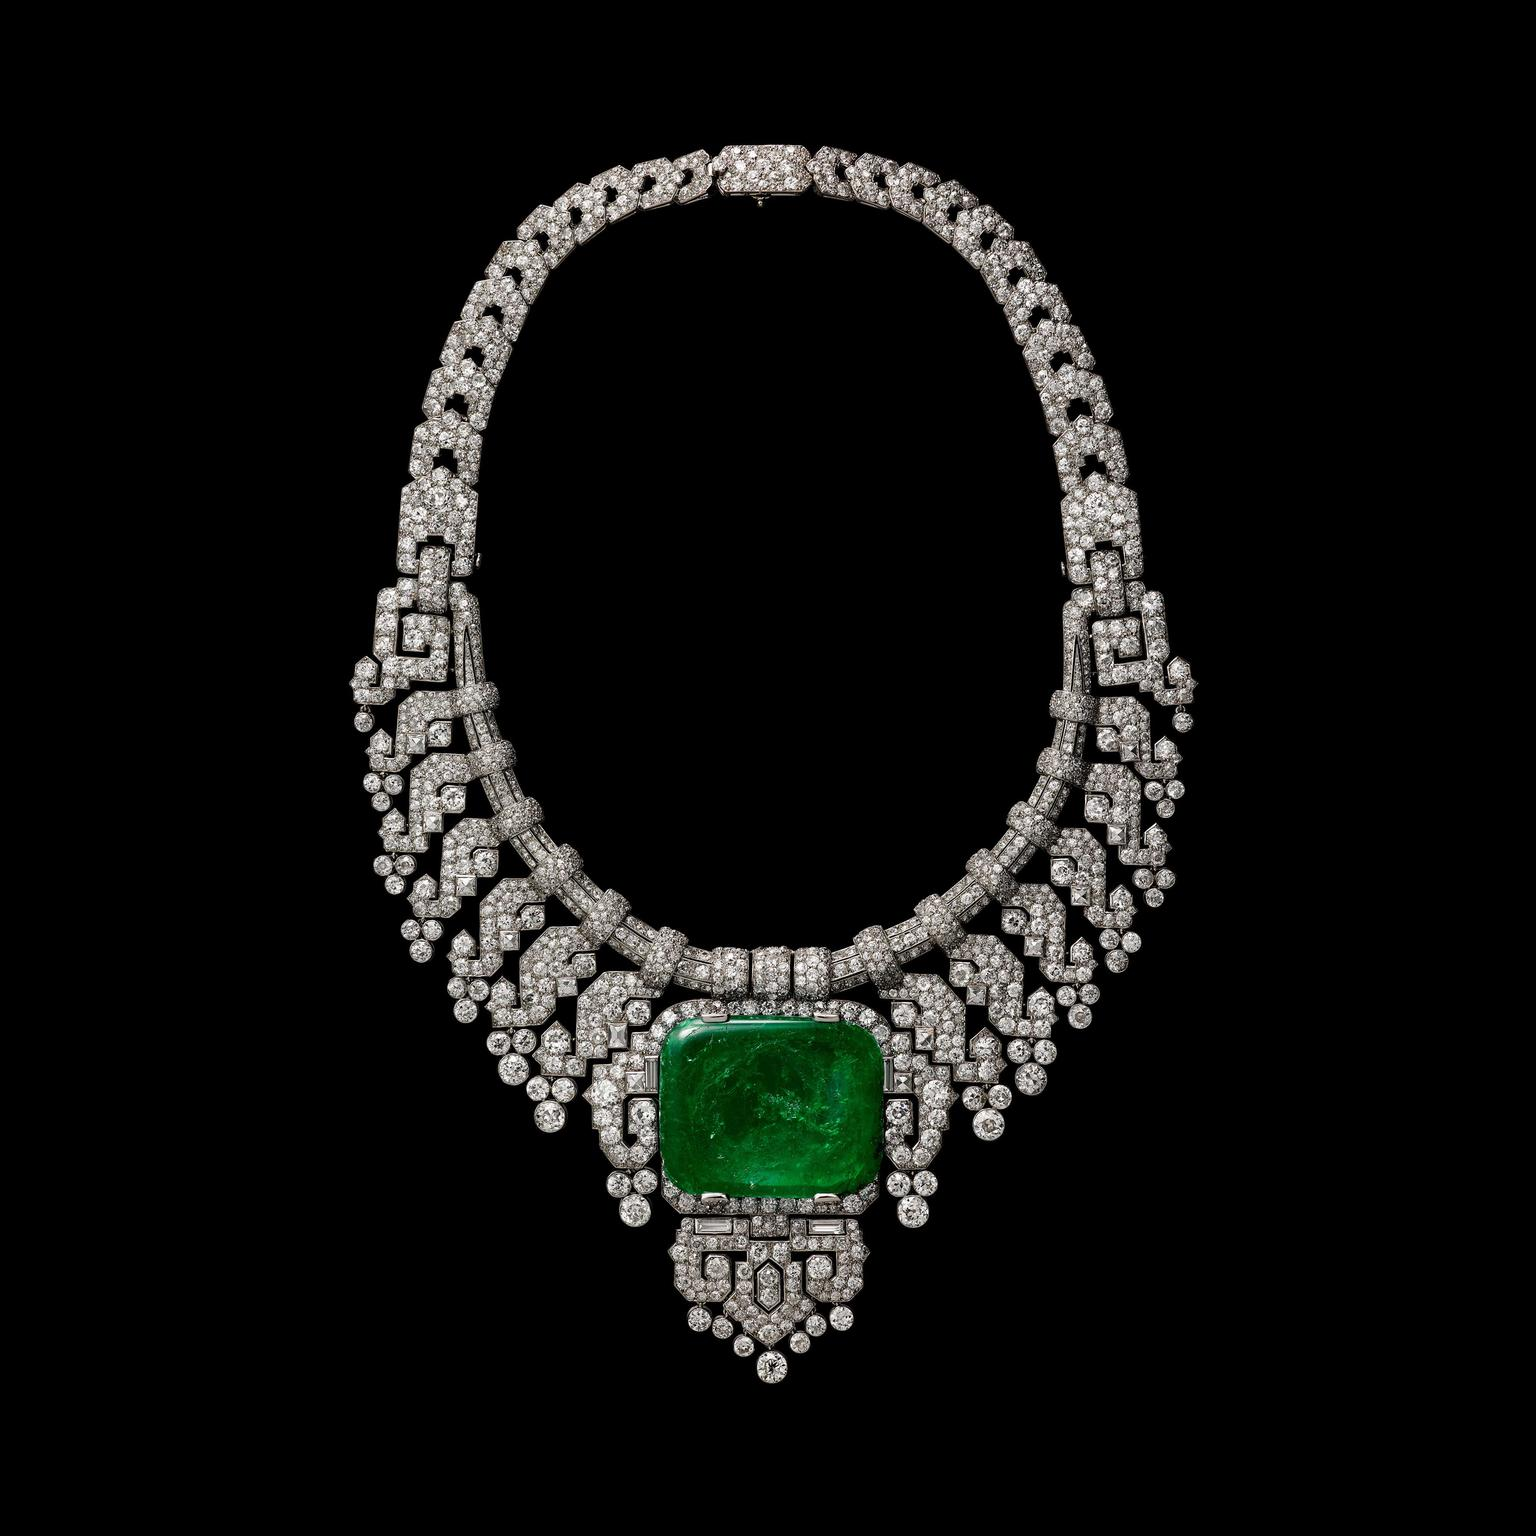 hindu emerald frutti tutti tag art hound necklace crocodile cartier small